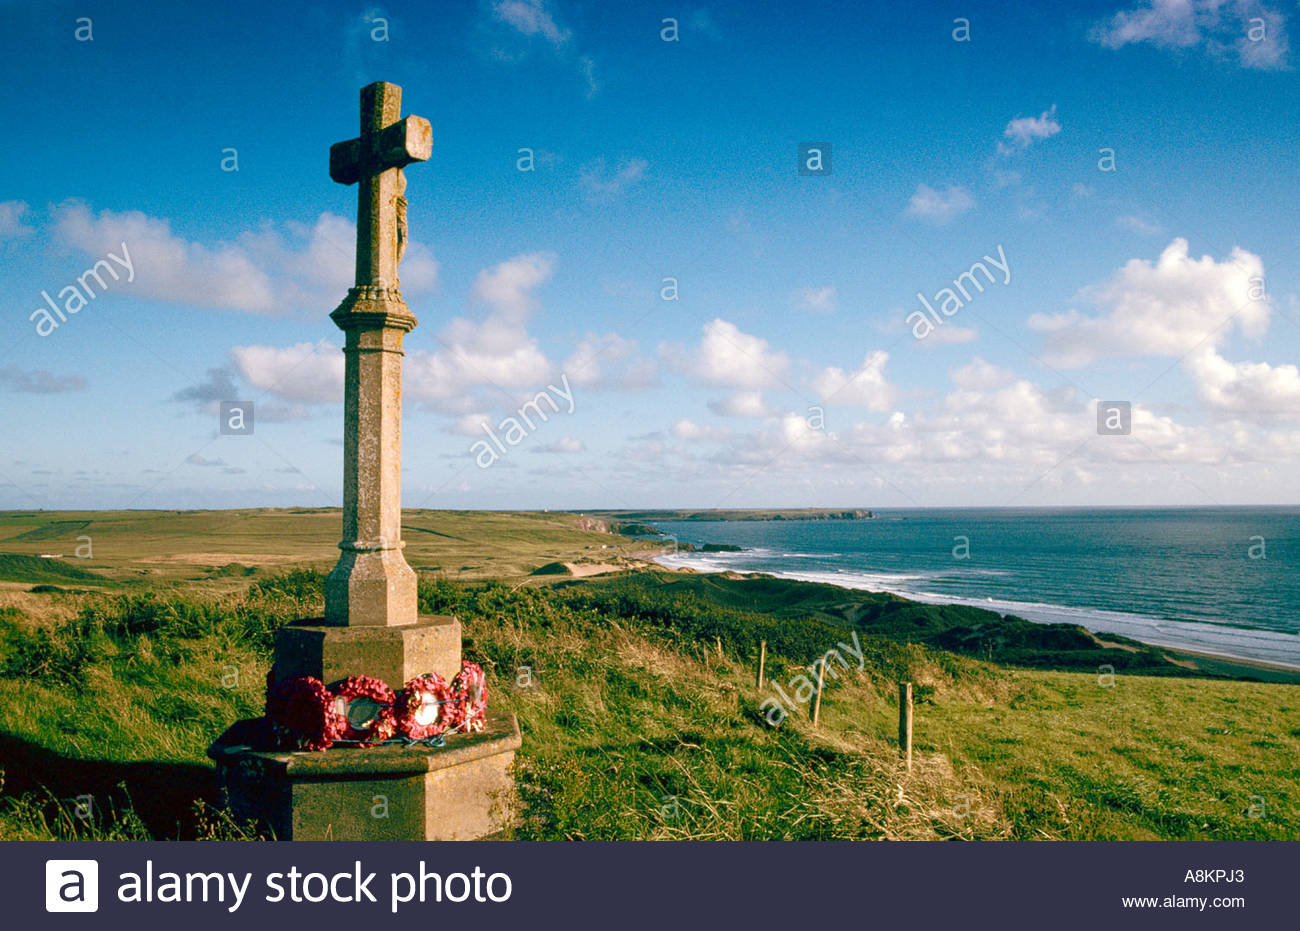 First World War war memorial on the coast of Pembrokeshire at Freshwater West, Wales, UK., remembering sailors lost at sea in World War 1. - Stock Image